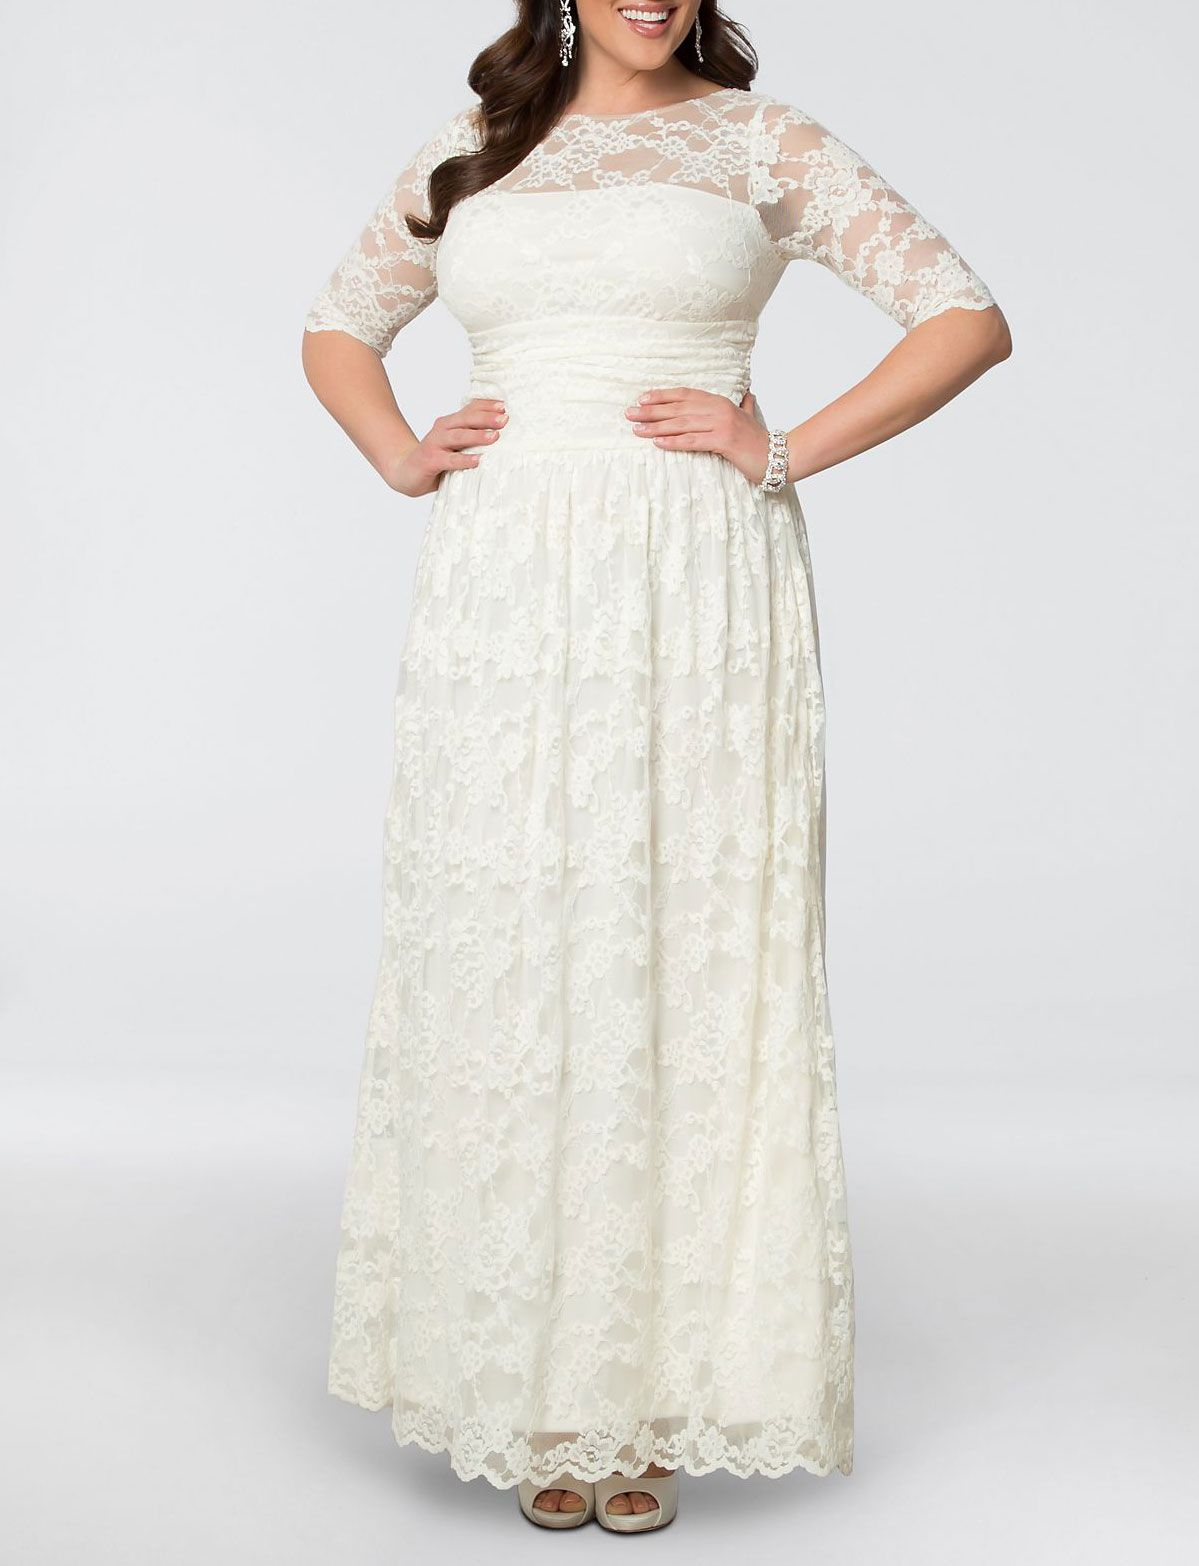 29 Dreamy Plus-Size Wedding Dresses